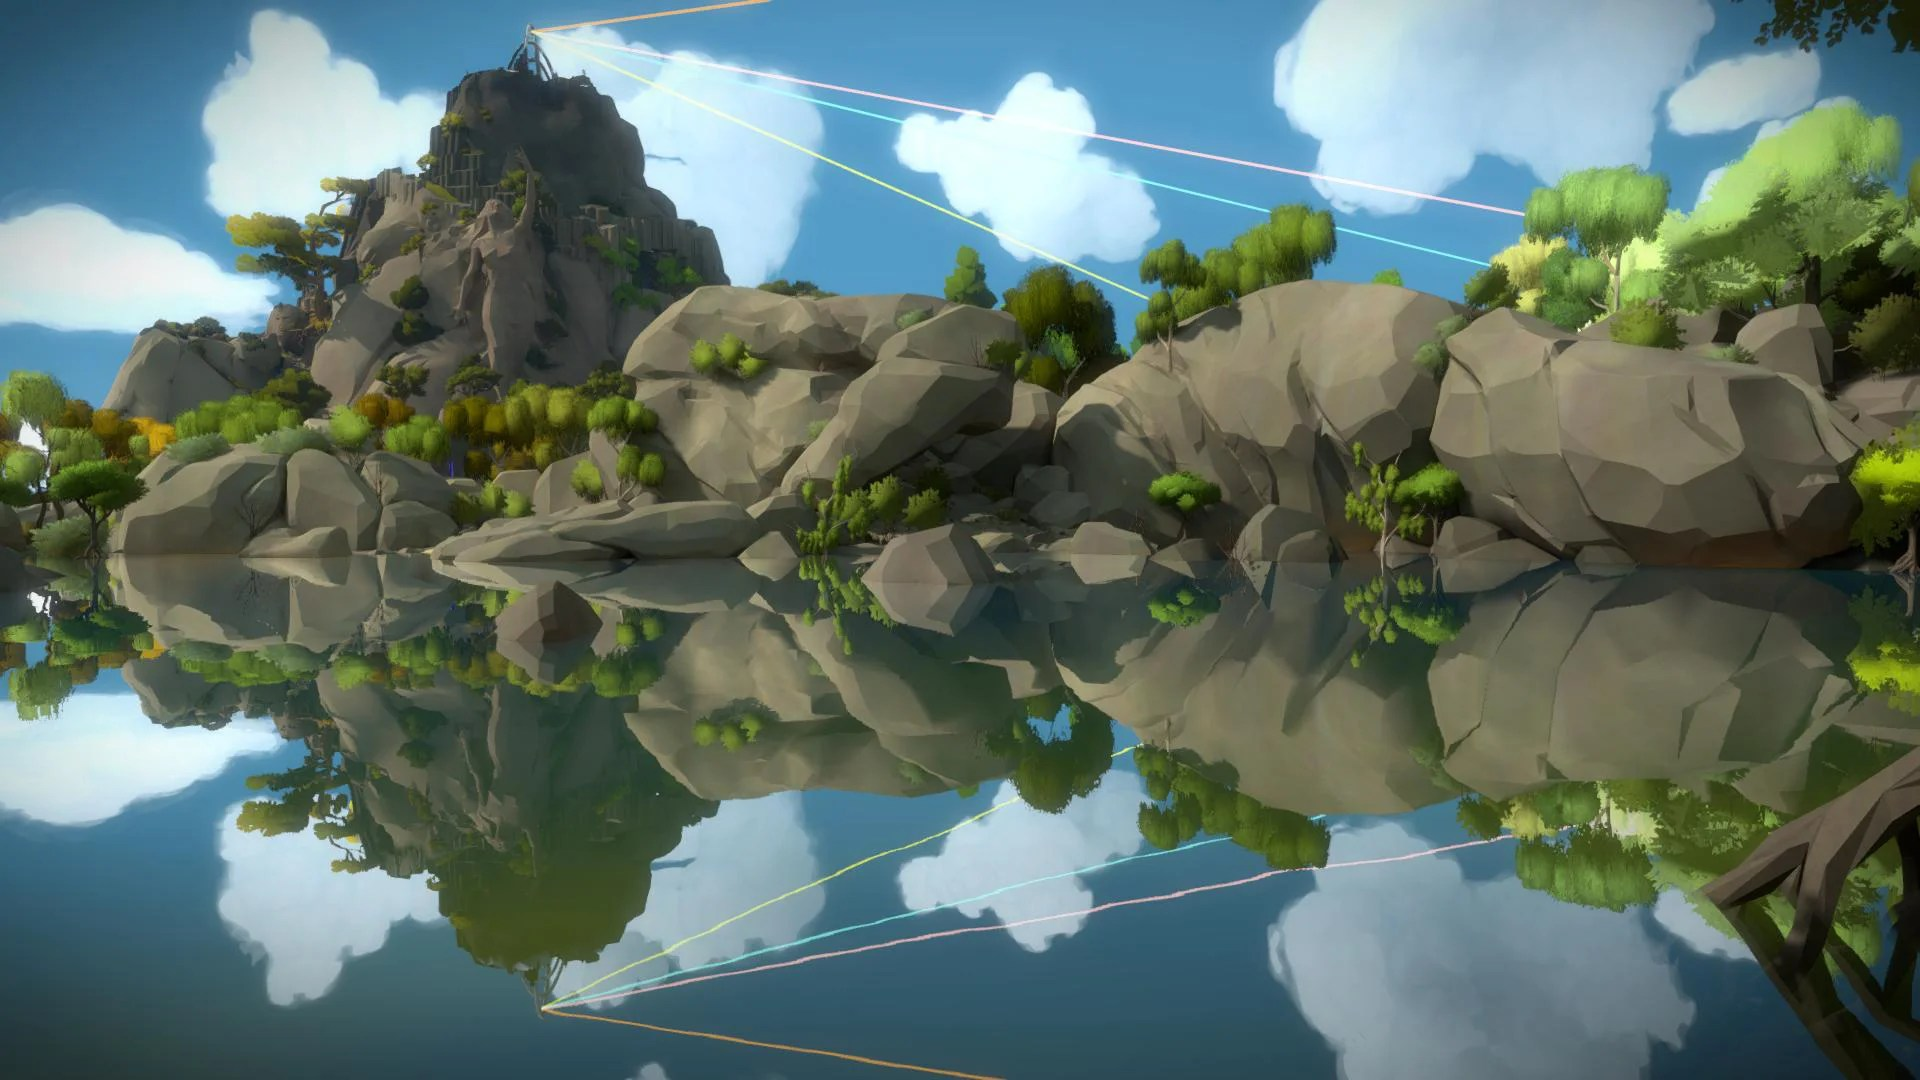 3d Space Wallpaper Uk Explore The Puzzling World Of The Witness In April 2018 S